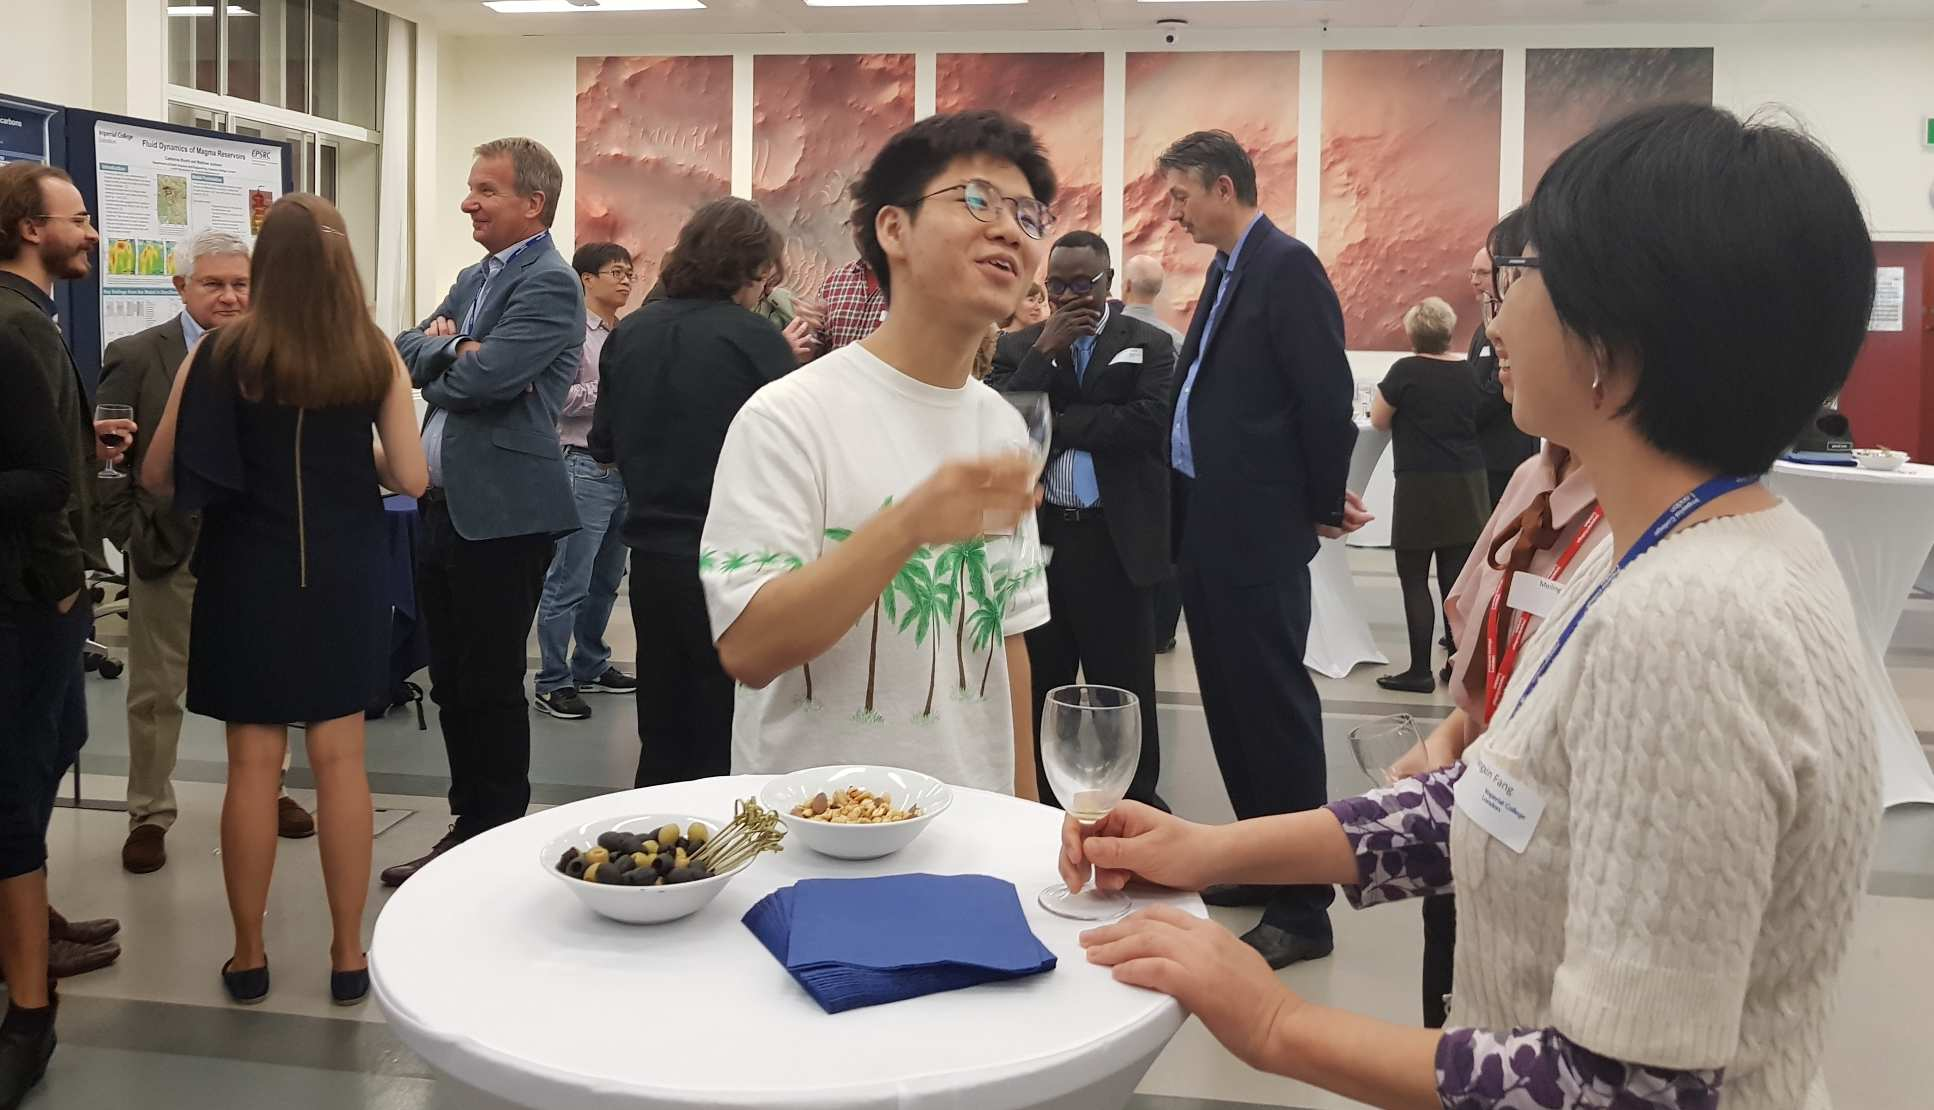 Staff and students at postgraduate prize reception